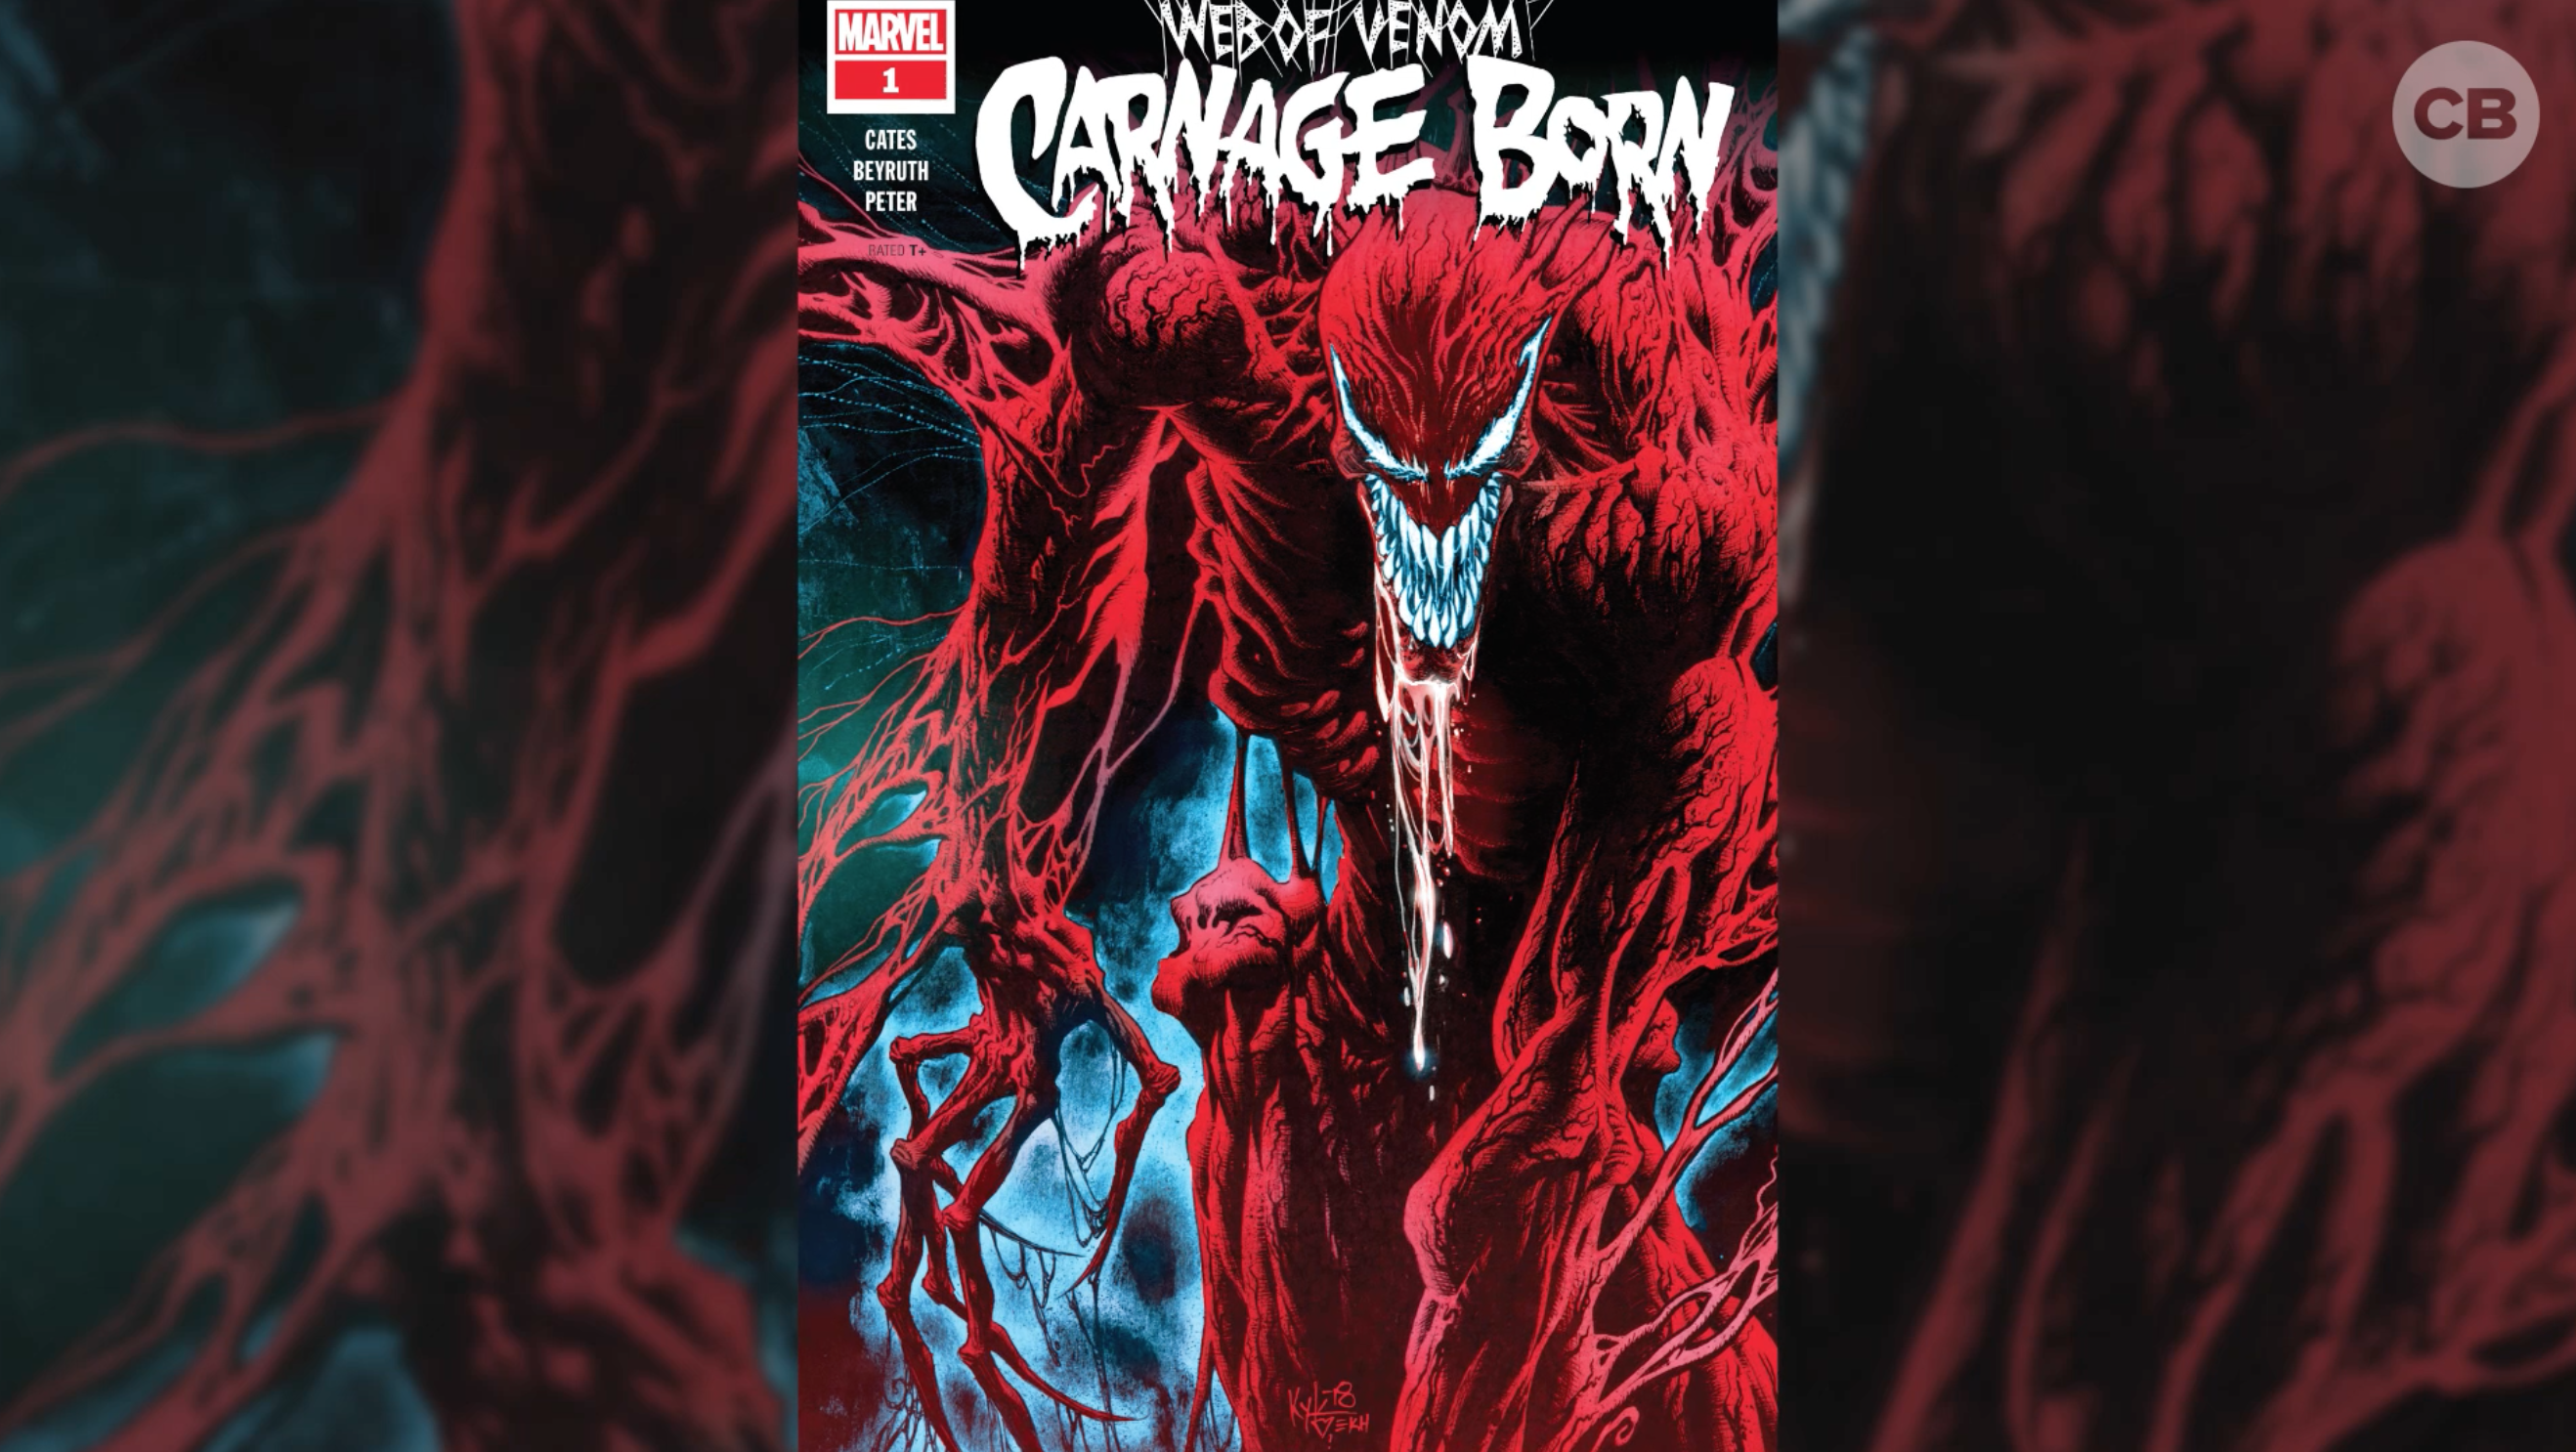 This Week in Comics: Web of Venom Carnage Born #1 screen capture